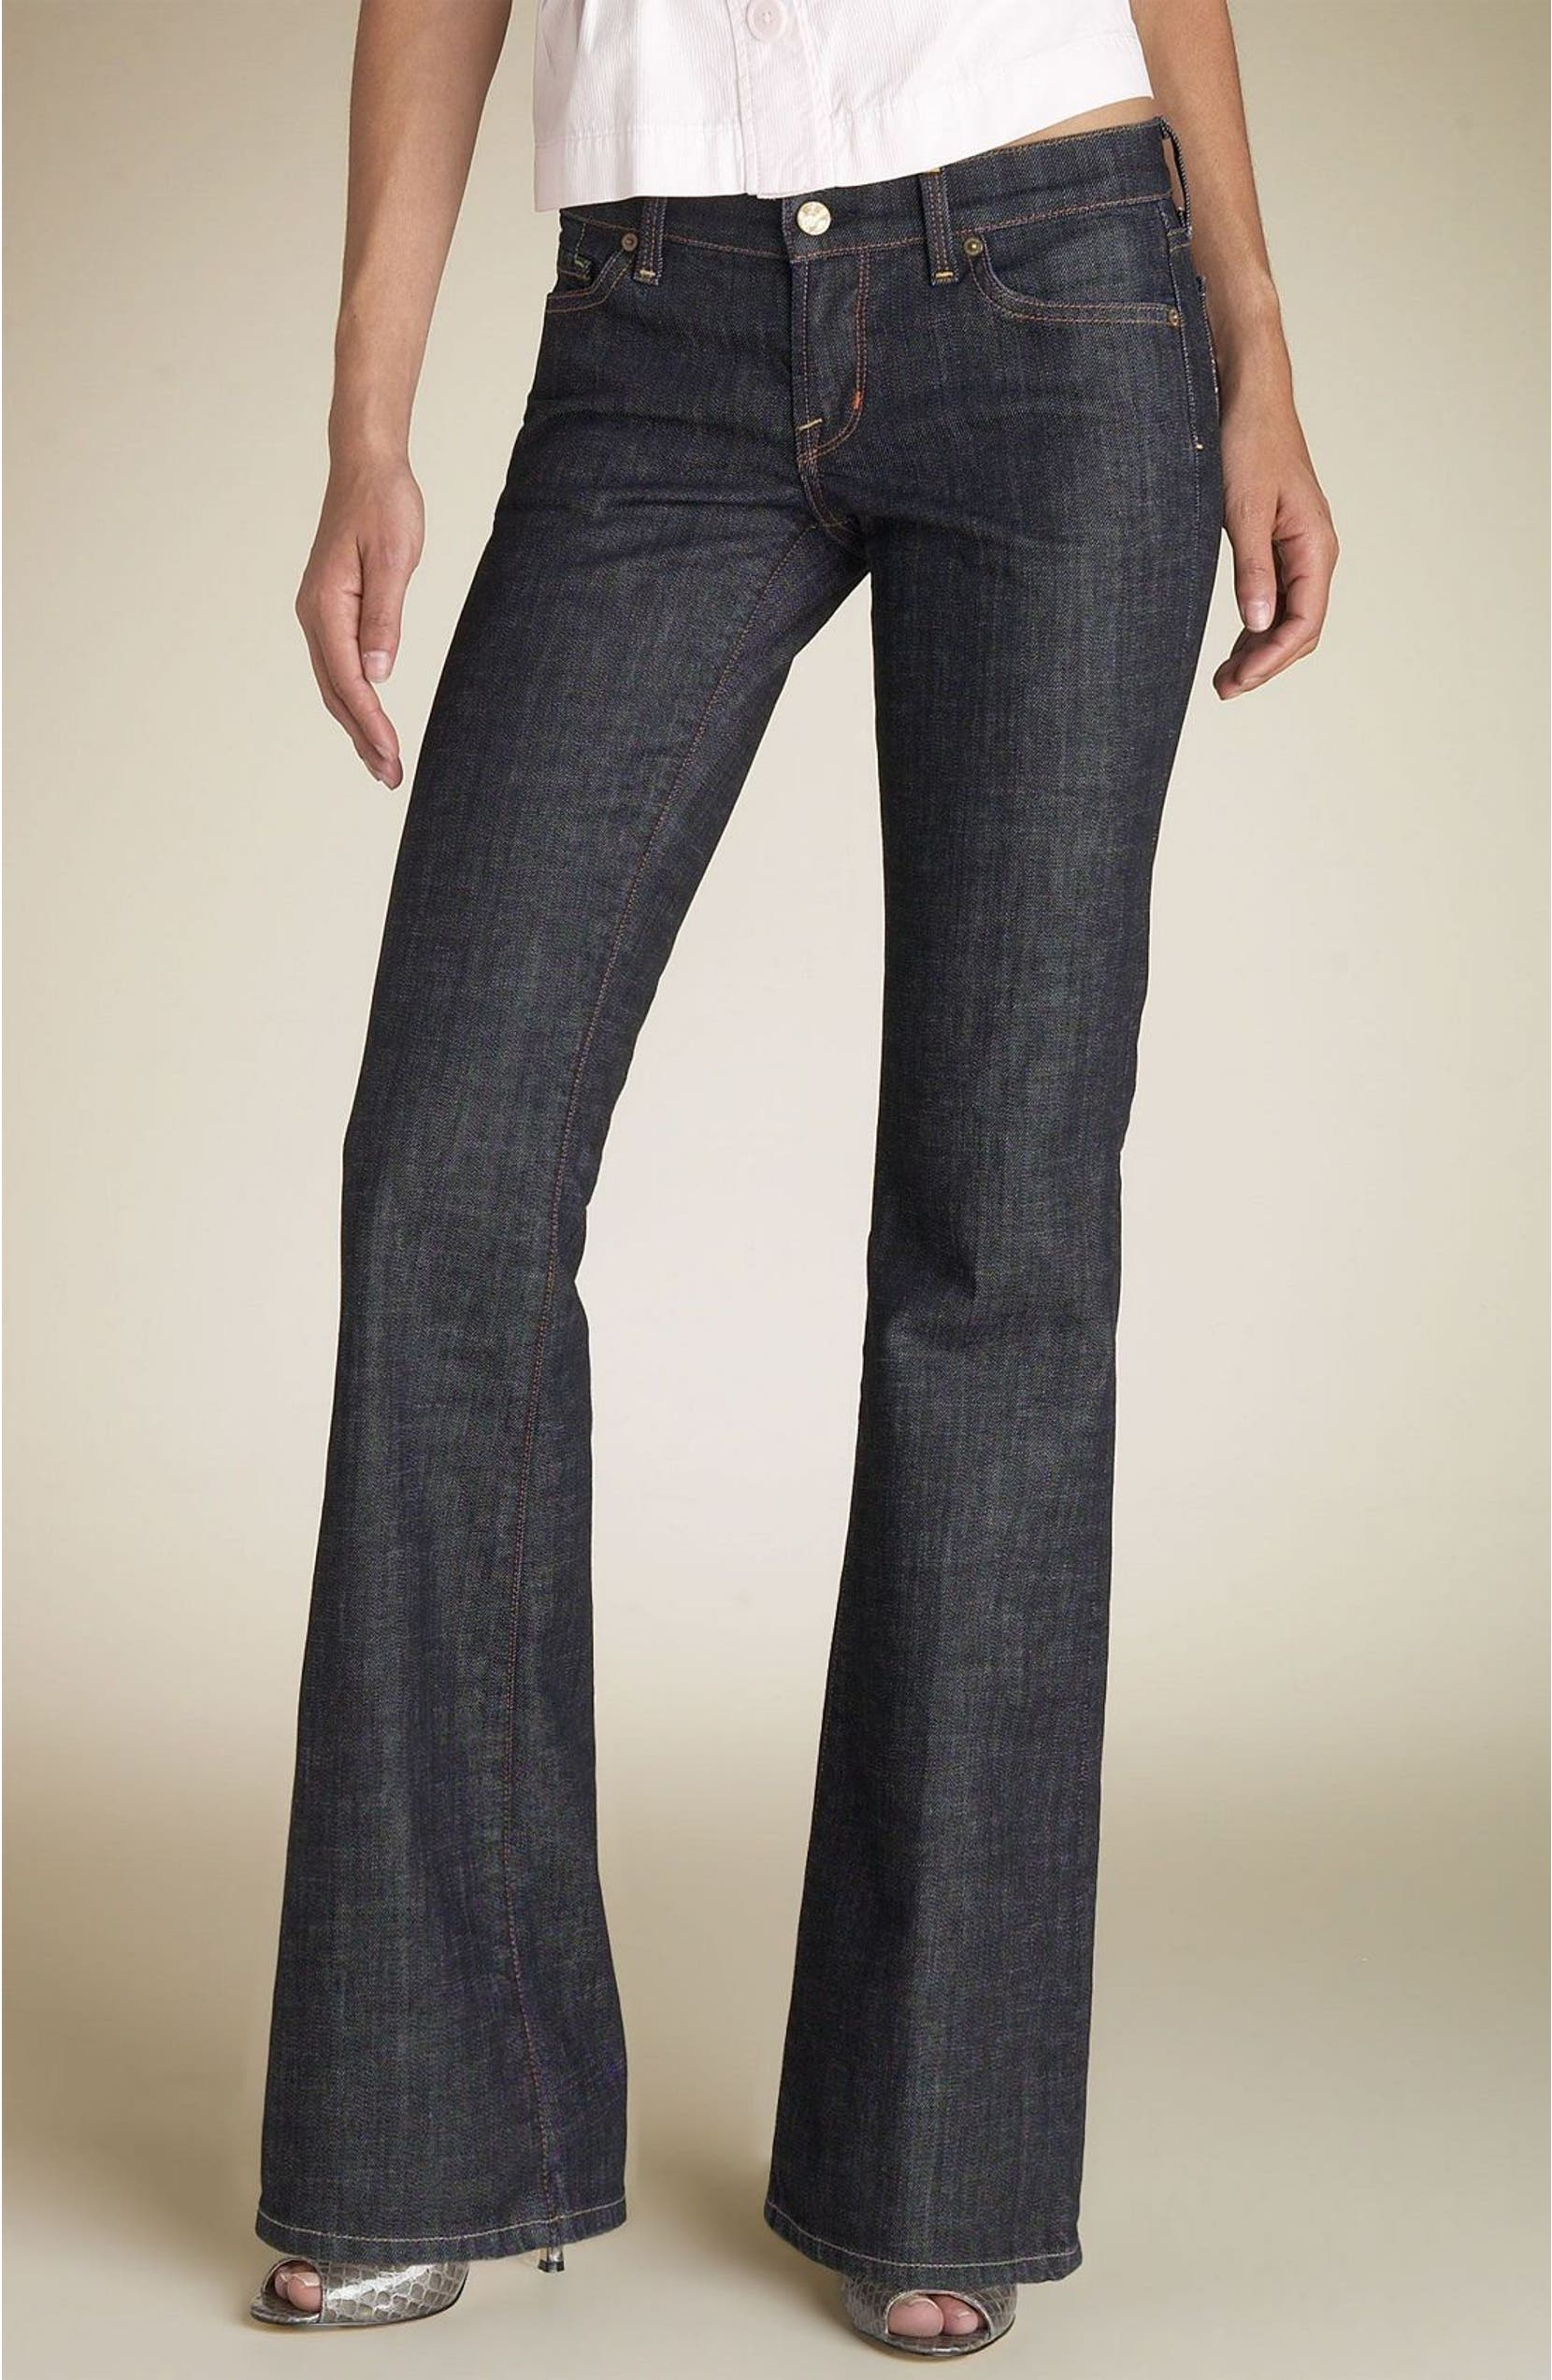 17a23a99ed Citizens of Humanity 'Ric Rac' Stretch Flare Jeans (Dark Paris) | Nordstrom